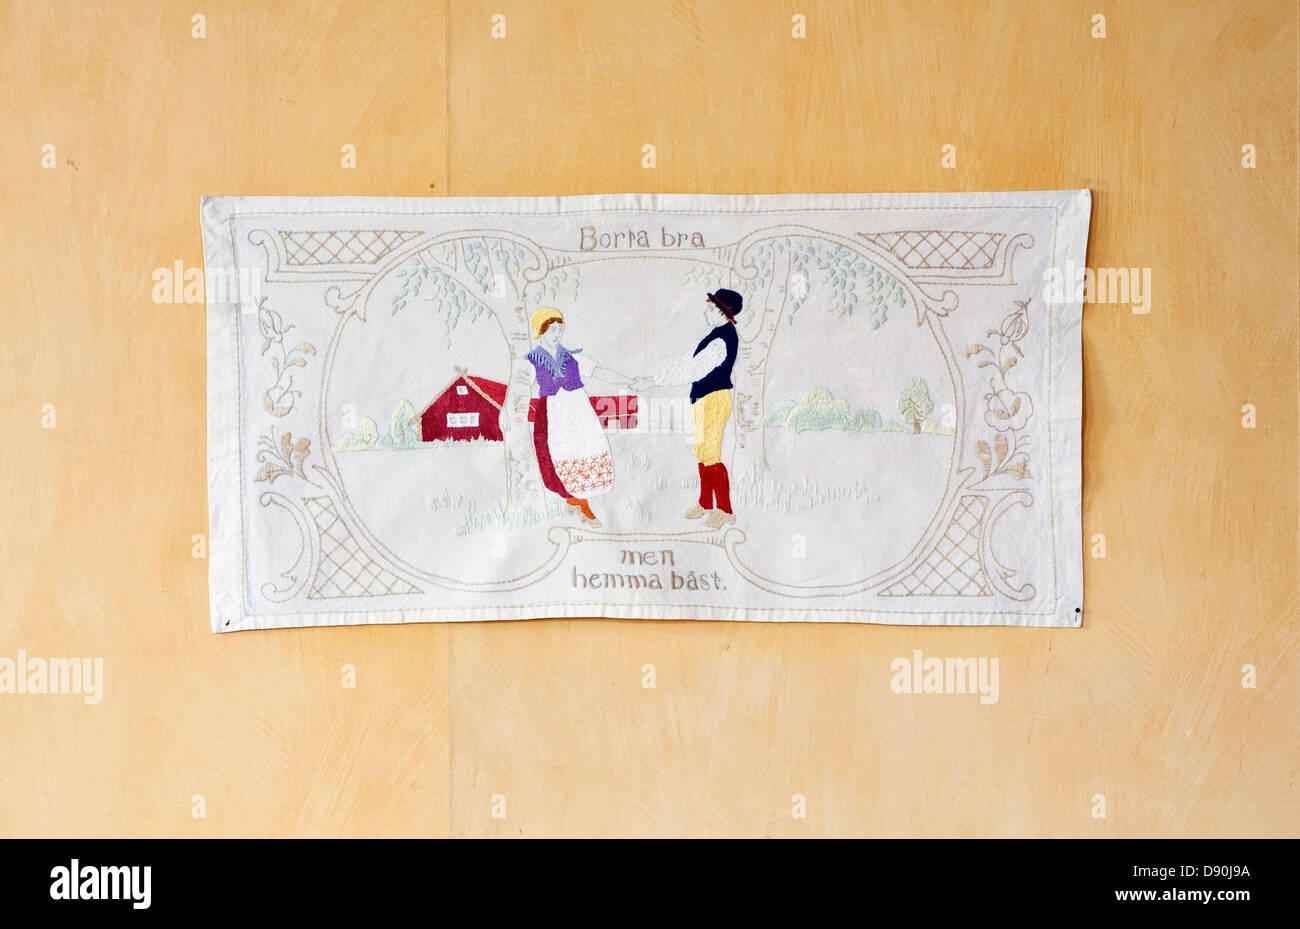 Embroidered Wall Hanging Stock Photos & Embroidered Wall Hanging ...